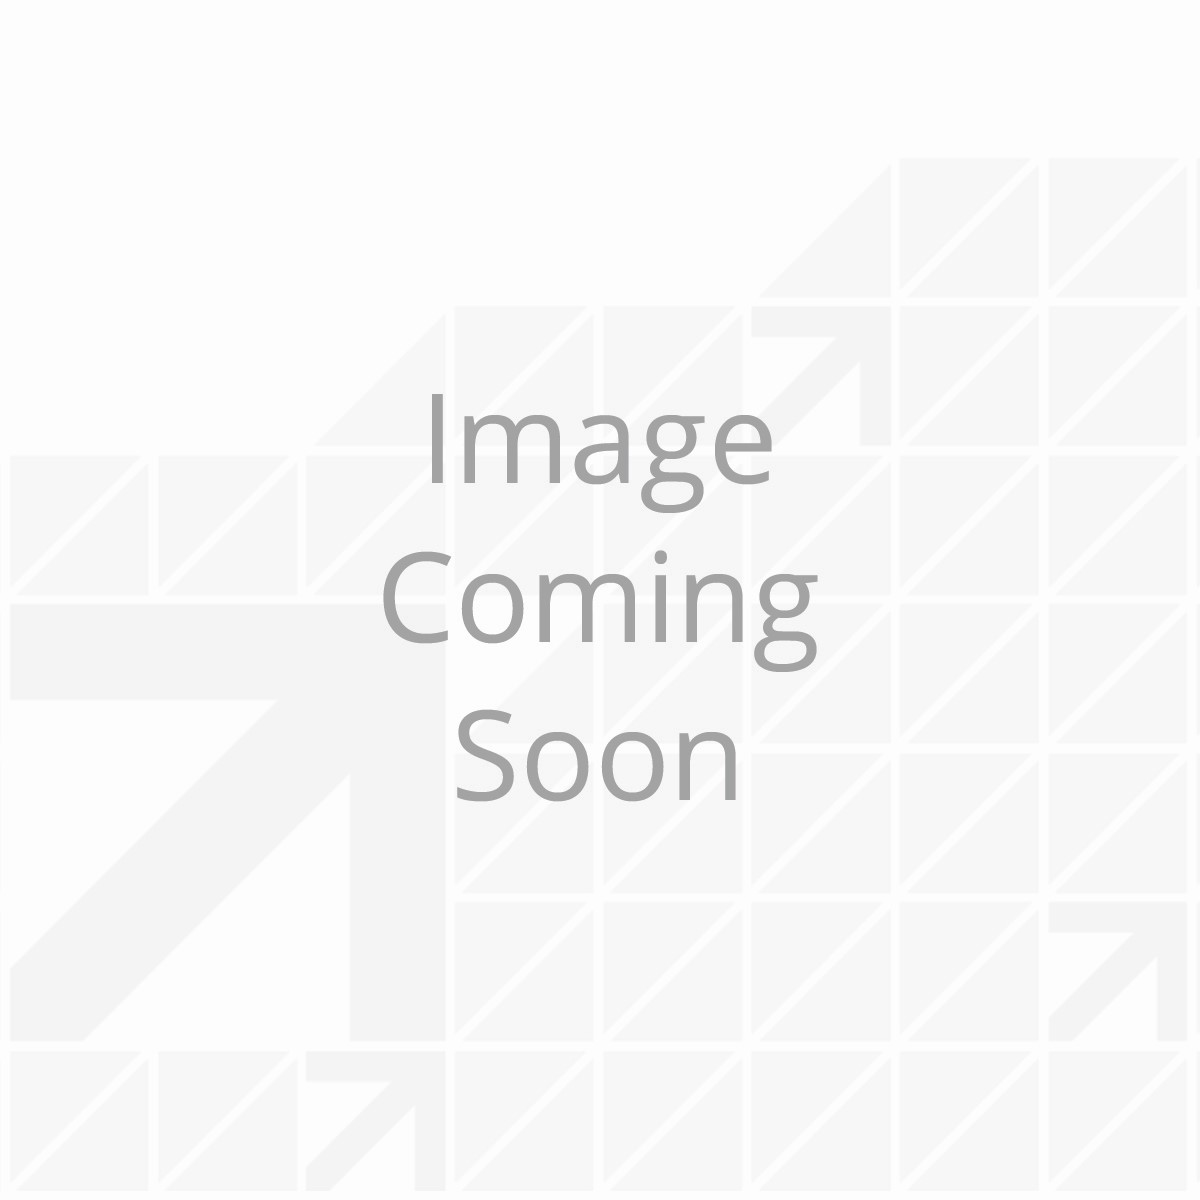 10 cu ft Refrigerator, Stainless Steel